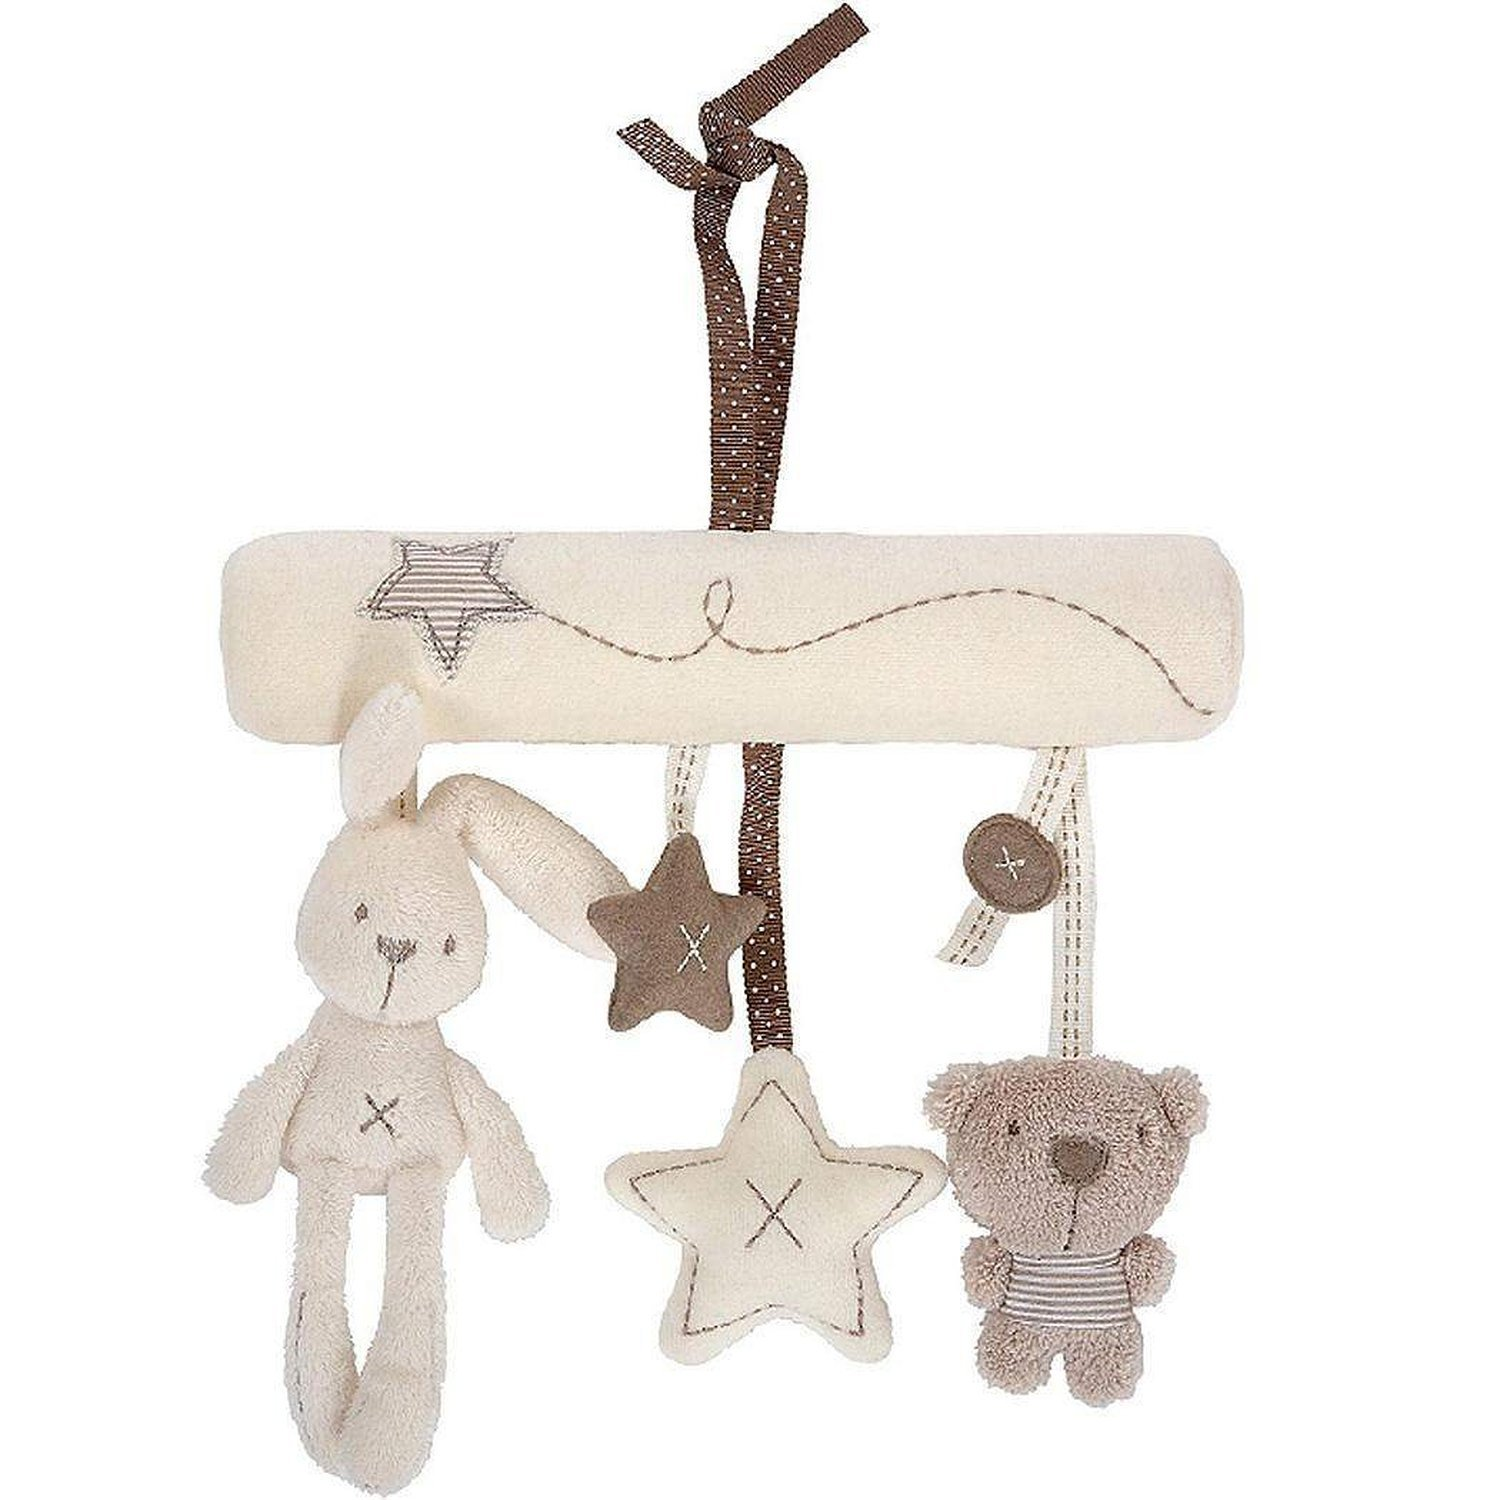 Rabbit Bear Plush Musical Crib Stroller Toy Baby Pram Rattle Hanging Animal Toys